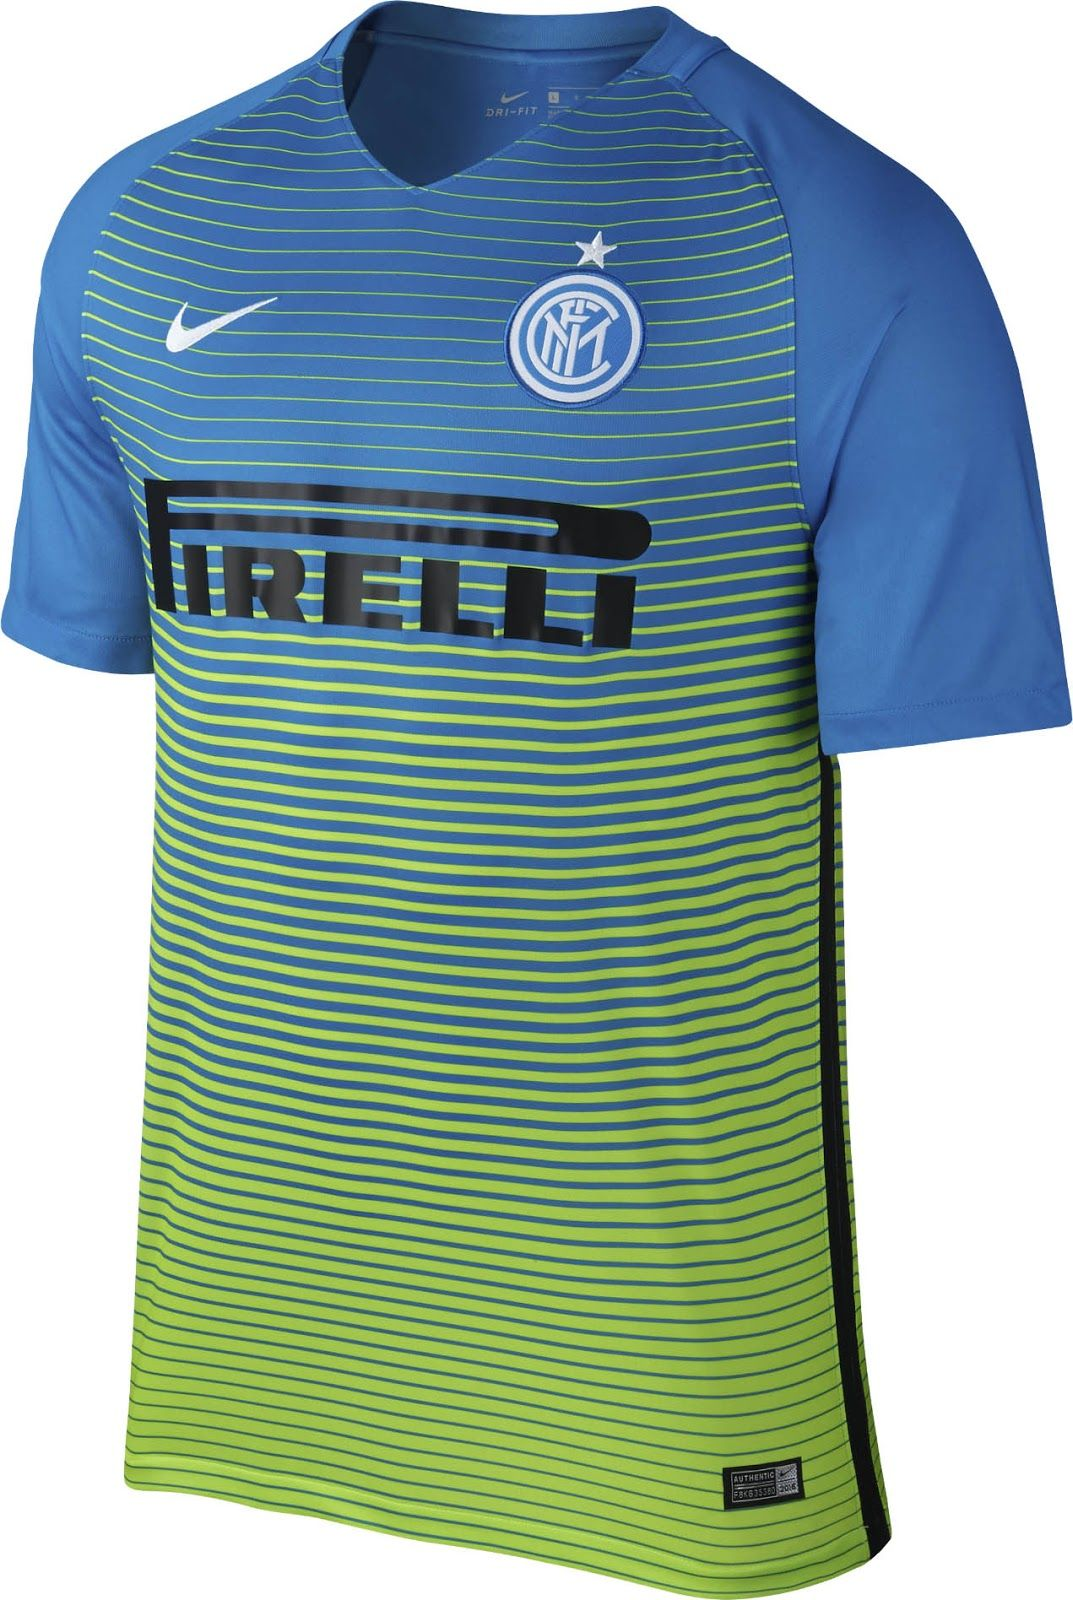 2a4a83486 The new Nike Inter Milan 16-17 third kit introduces a bold look in lime  green…